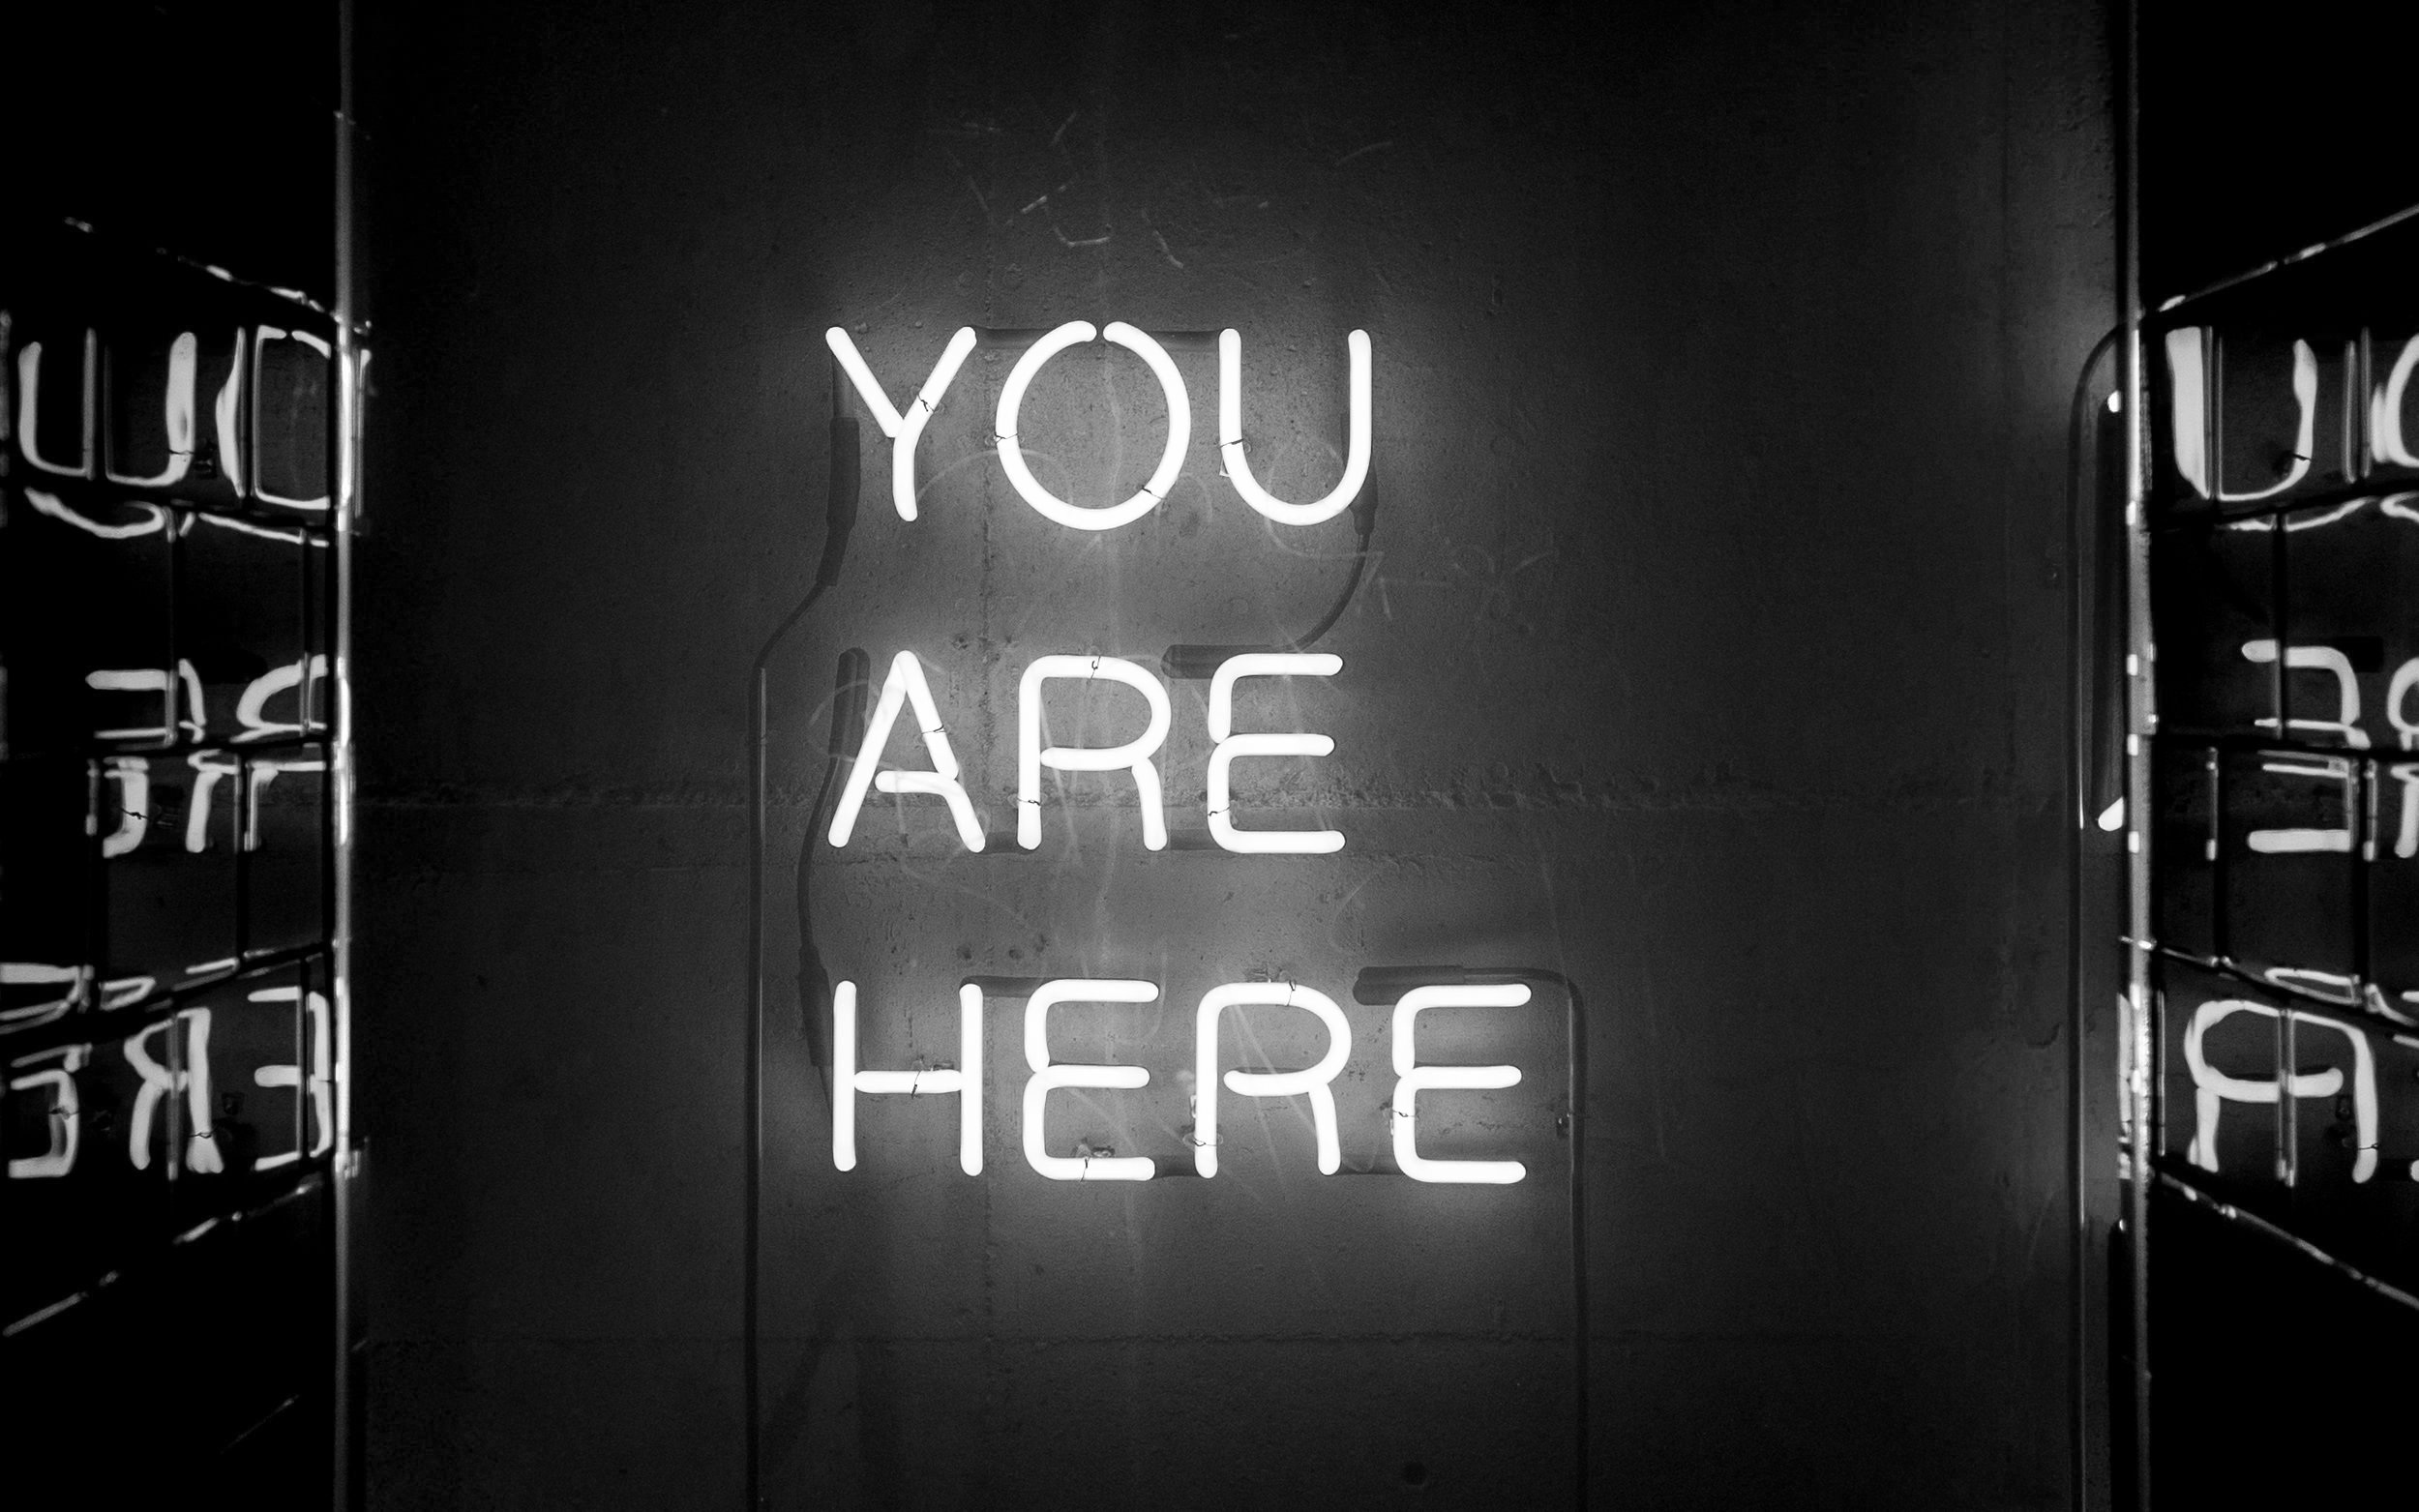 'You are here' sign - accompanies an article about self-compassion